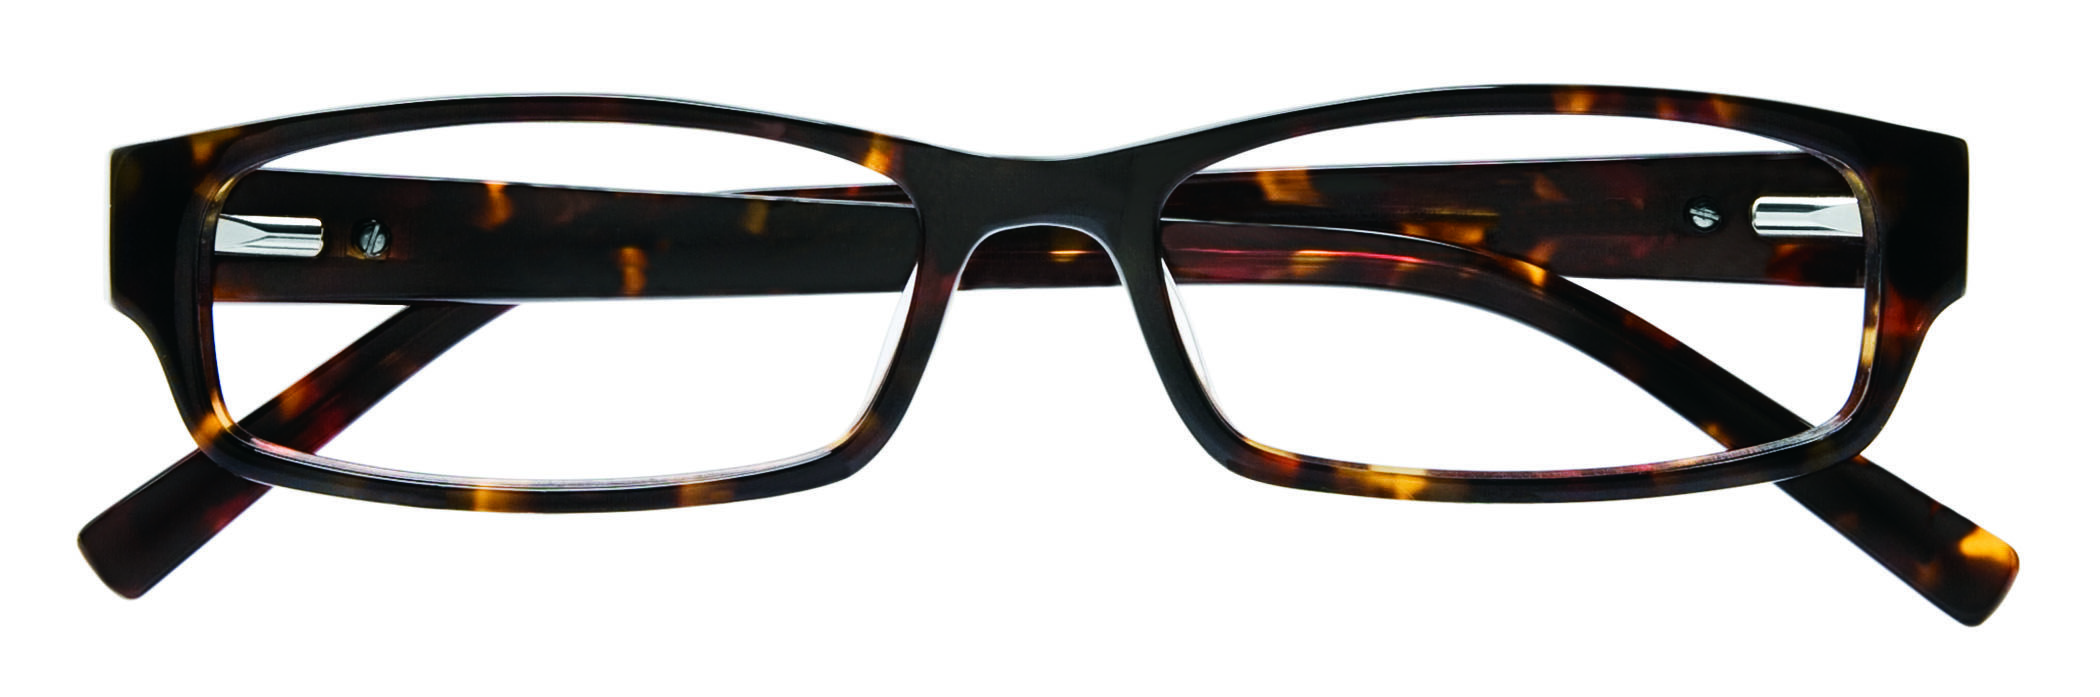 IZOD 388. Available in tortoise, black tortoise, and moss green ...